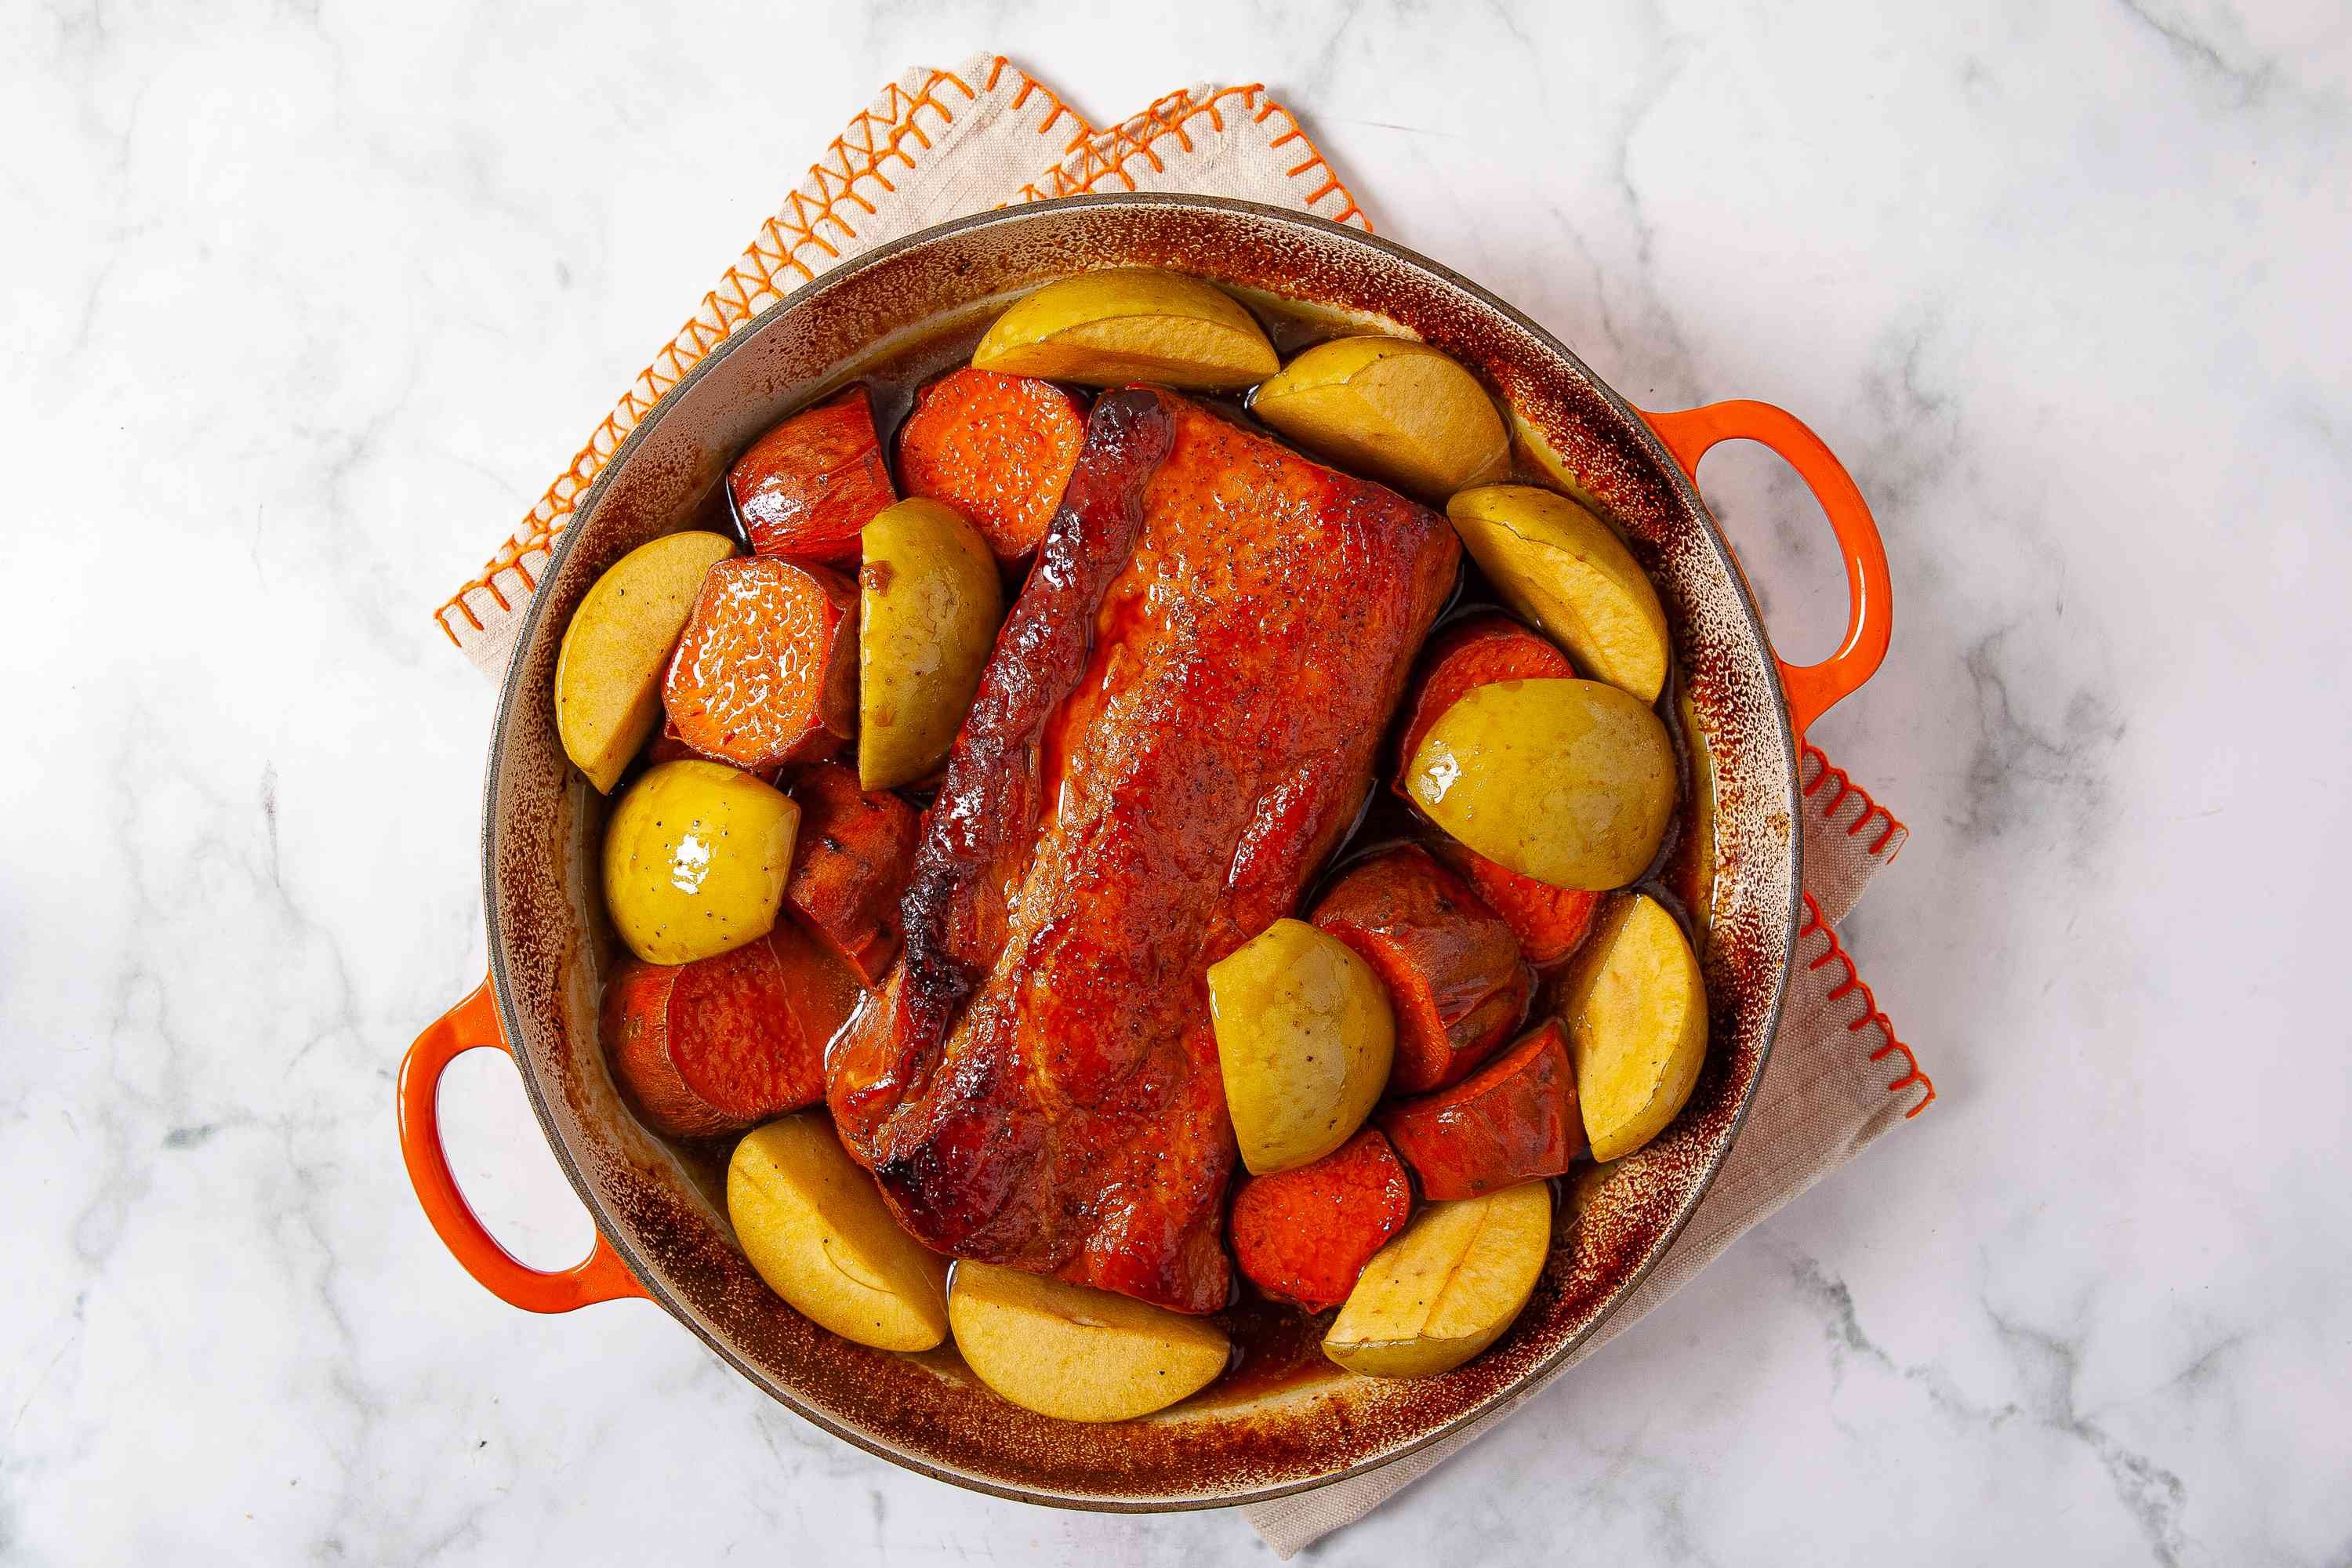 Roast Pork Loin With Sweet Potatoes and Apples in a dutch oven